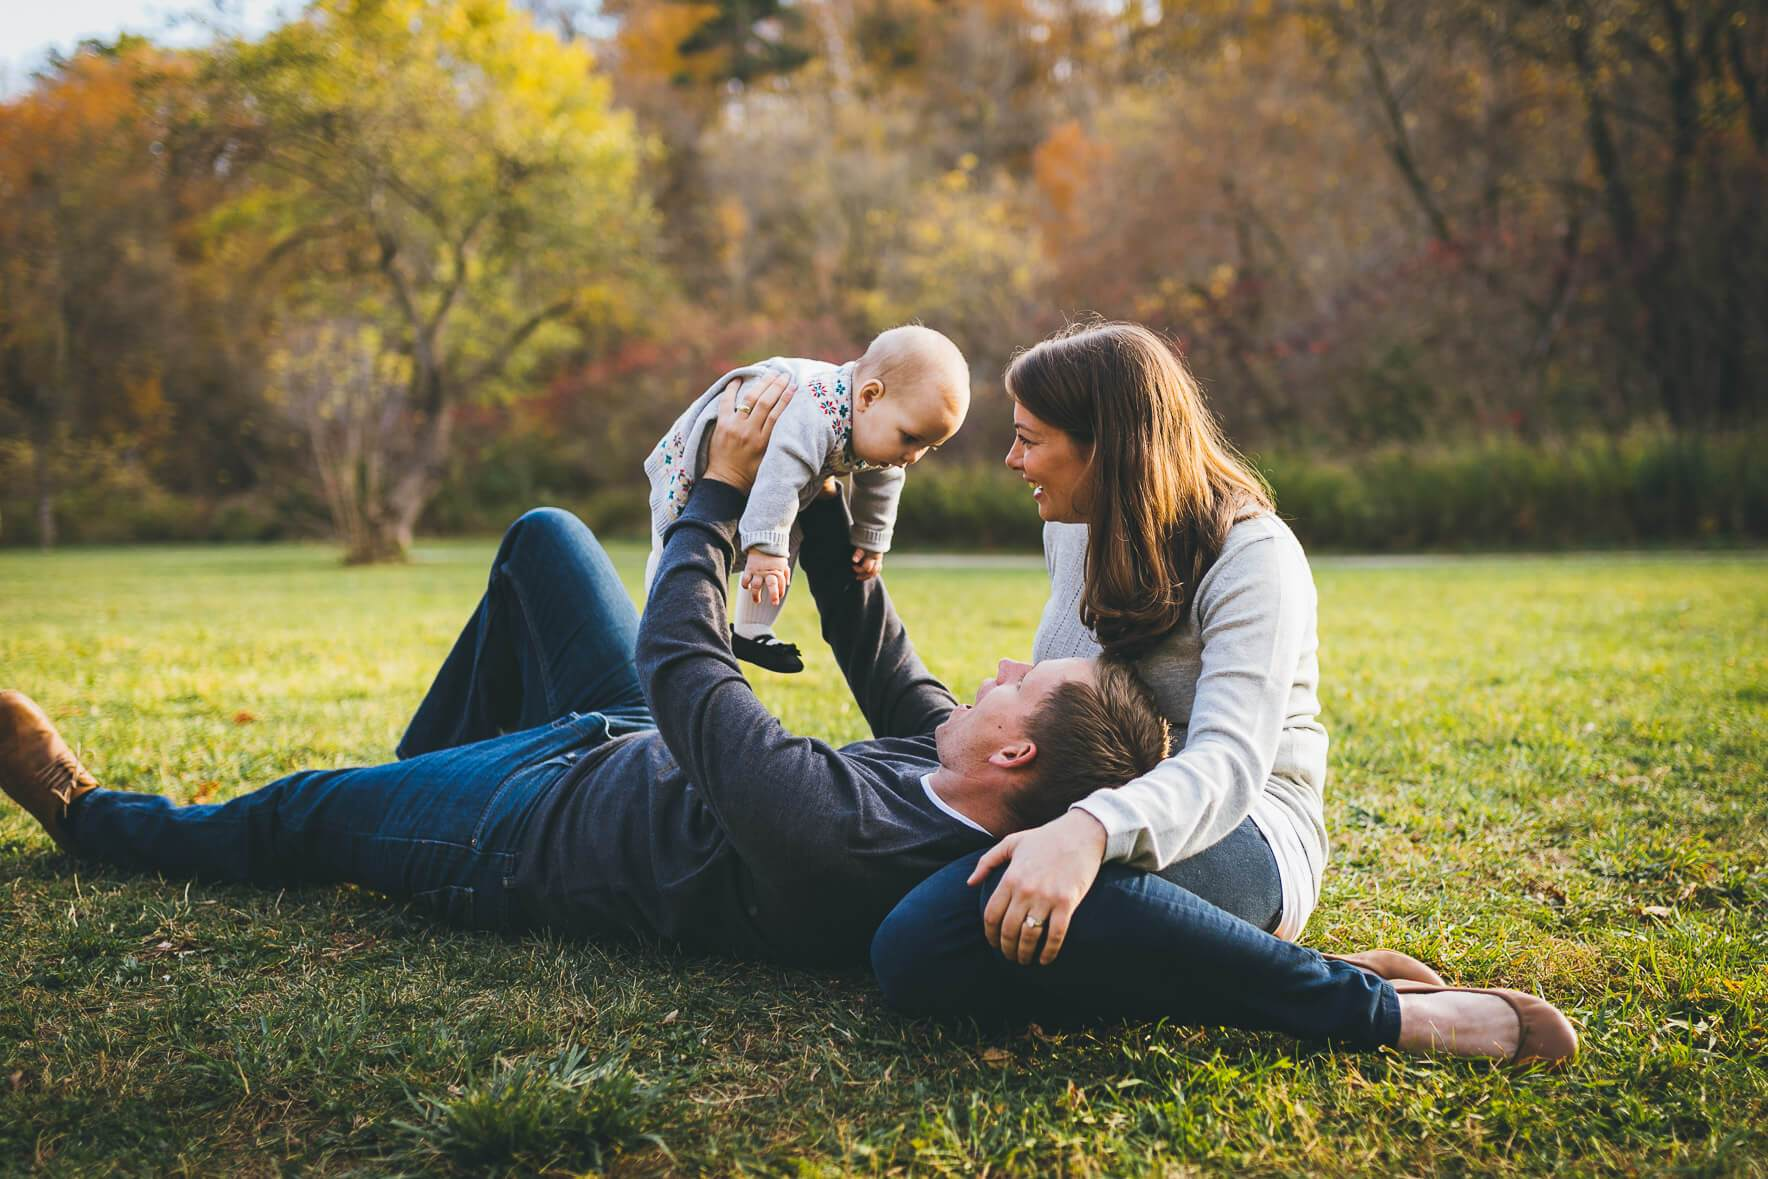 Dad lifts baby in Lions Valley Park during a fall photo shoot